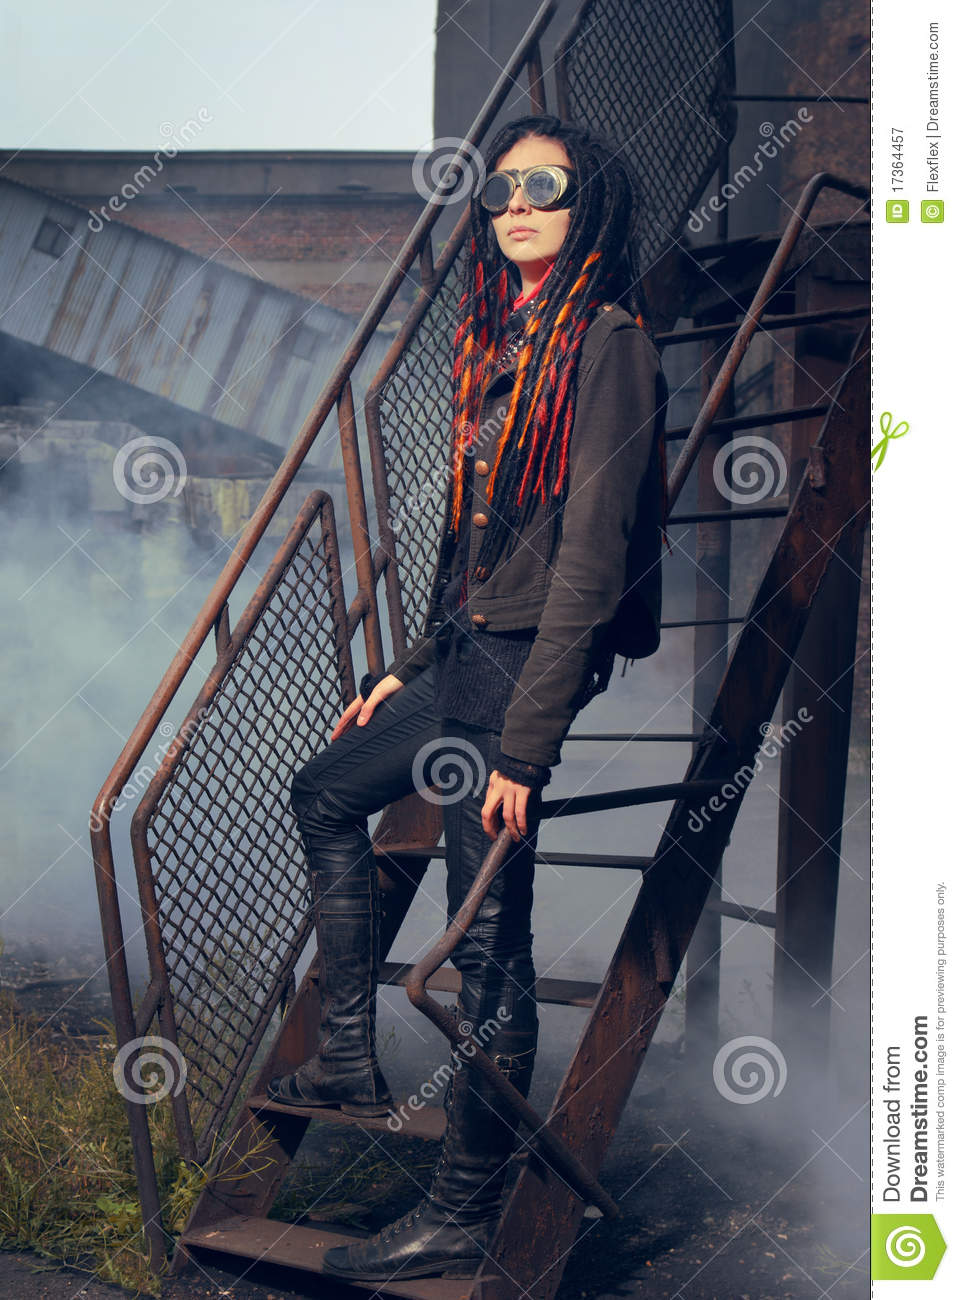 Young Woman In Industrial Style Standing On Stairs Stock Image